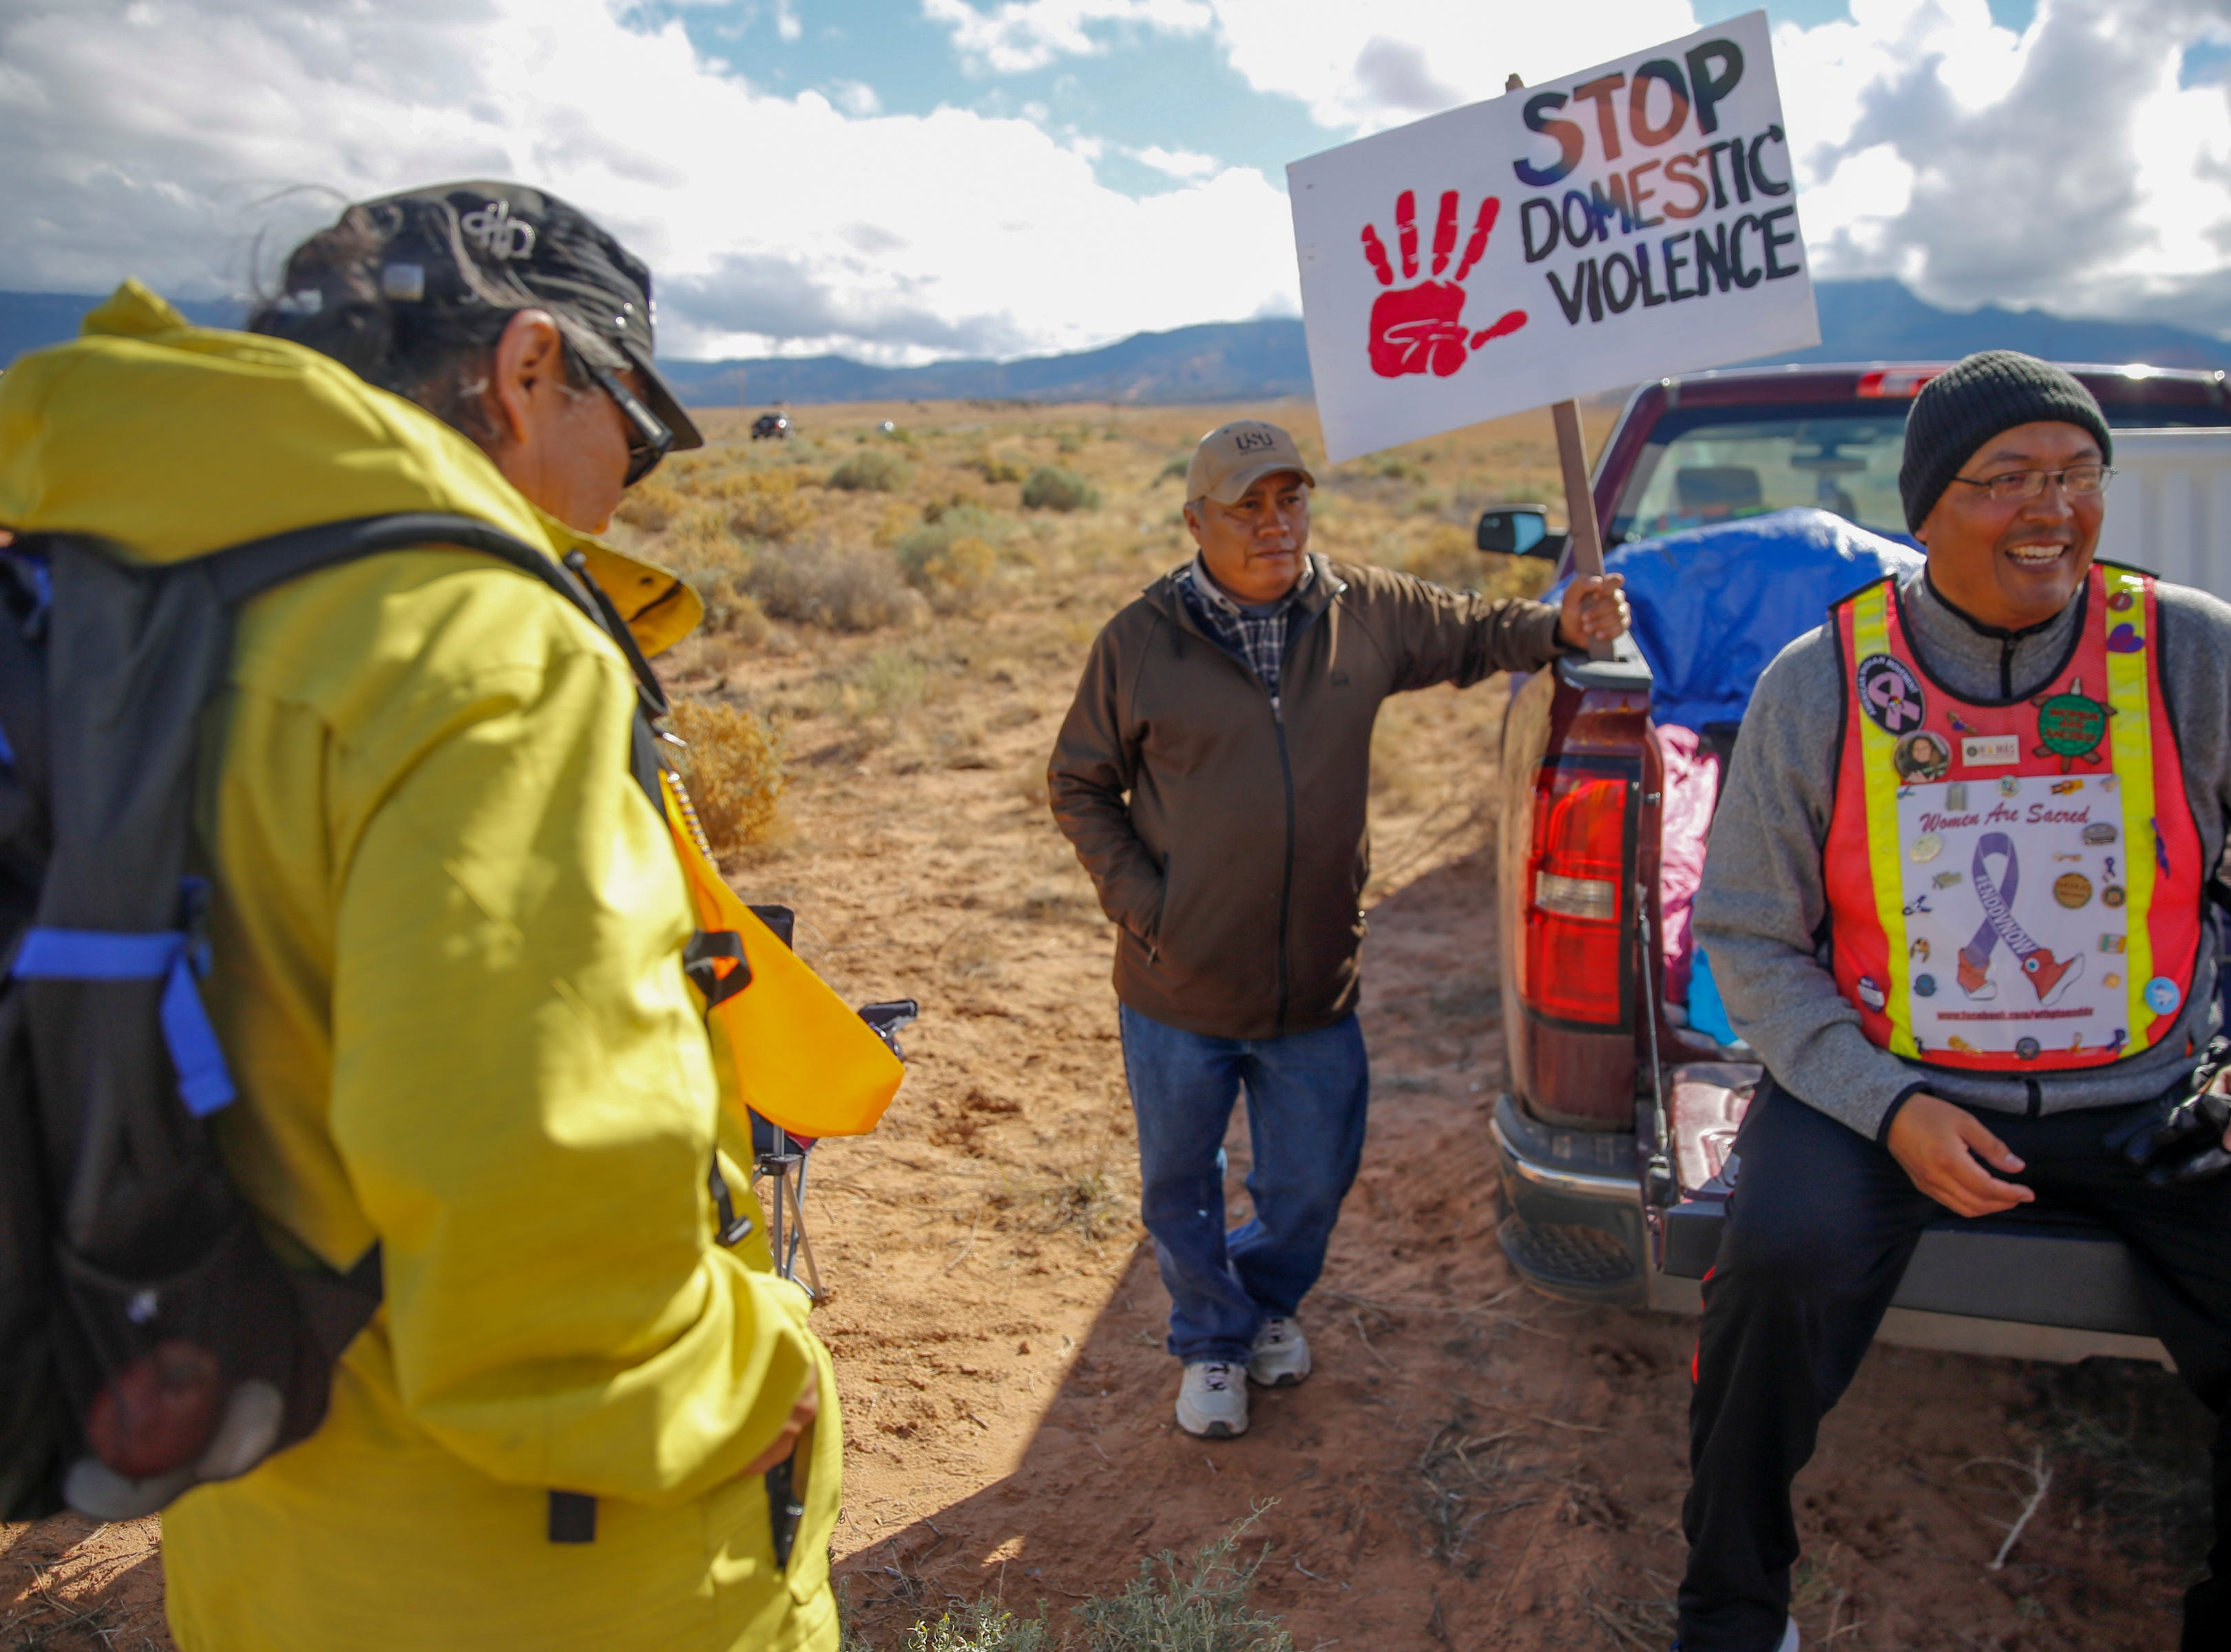 From left, Gary Mike, Jerald Begay and John Tsosie break for lunch along Navajo Route 13 in Red Valley , Arizona, Thursday, Oct. 18, 2018.